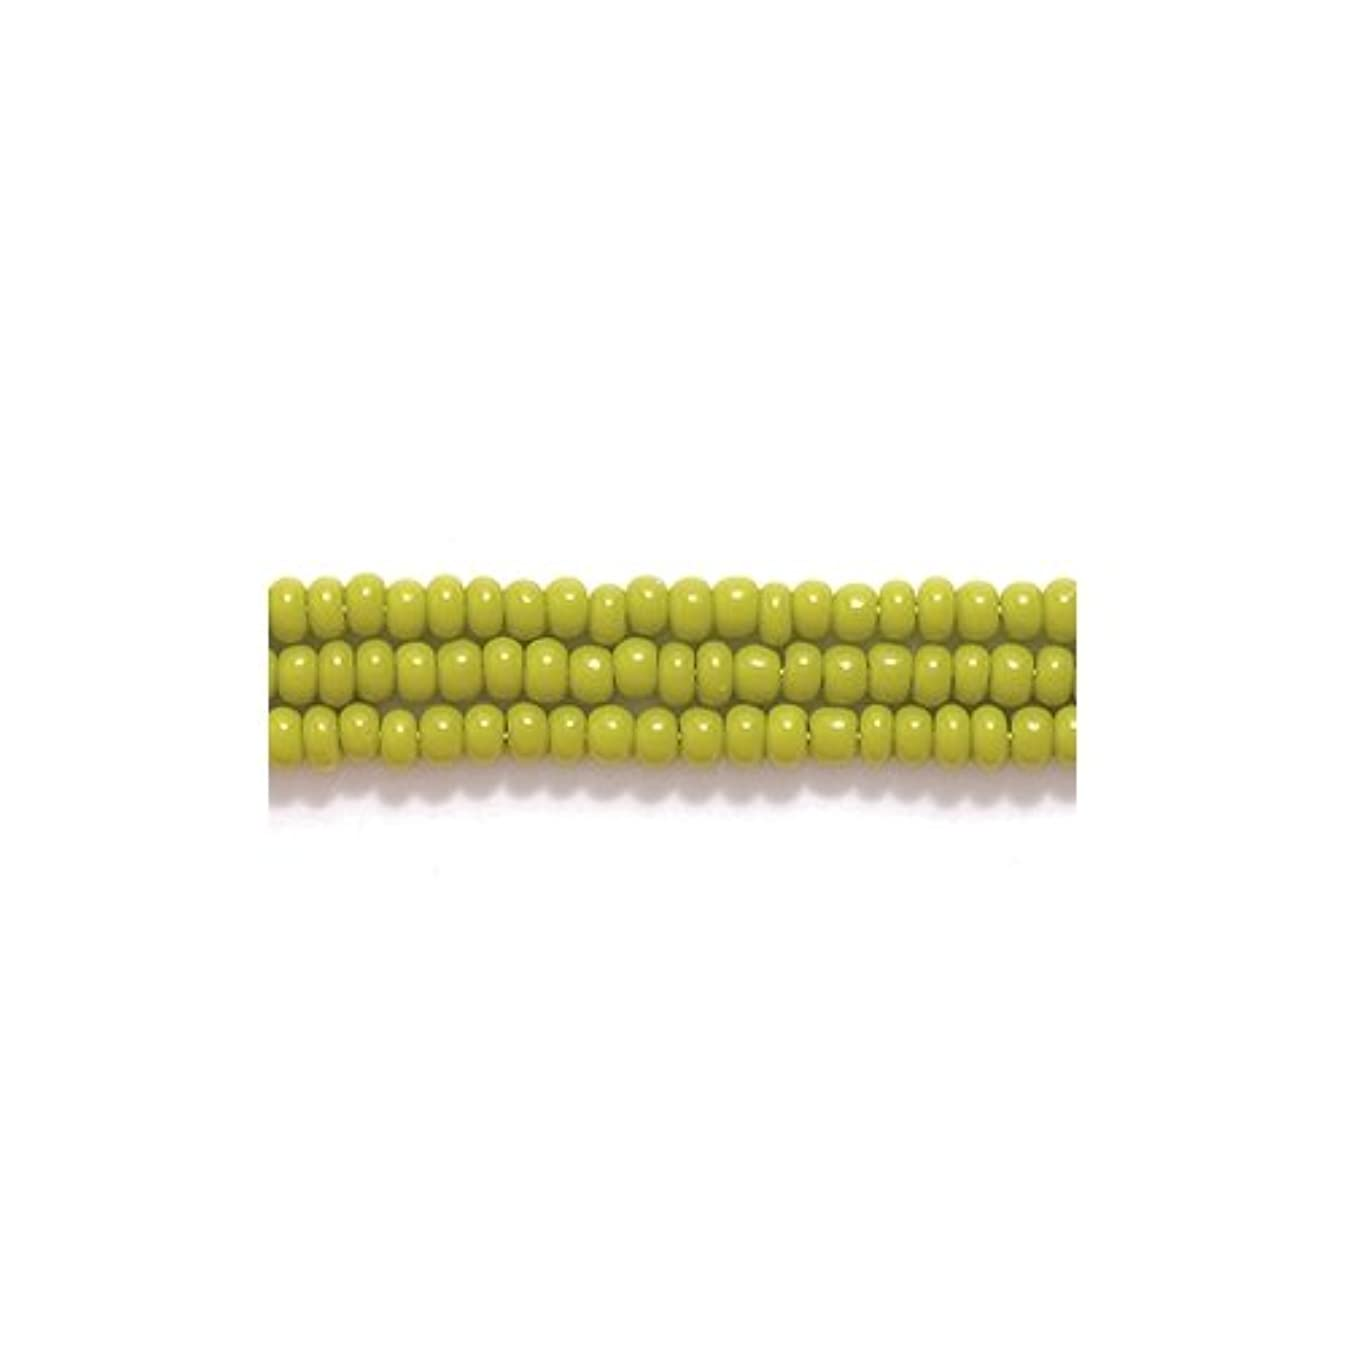 Preciosa Ornela Czech Seed Bead, Opaque Olive Green, Size 11/0